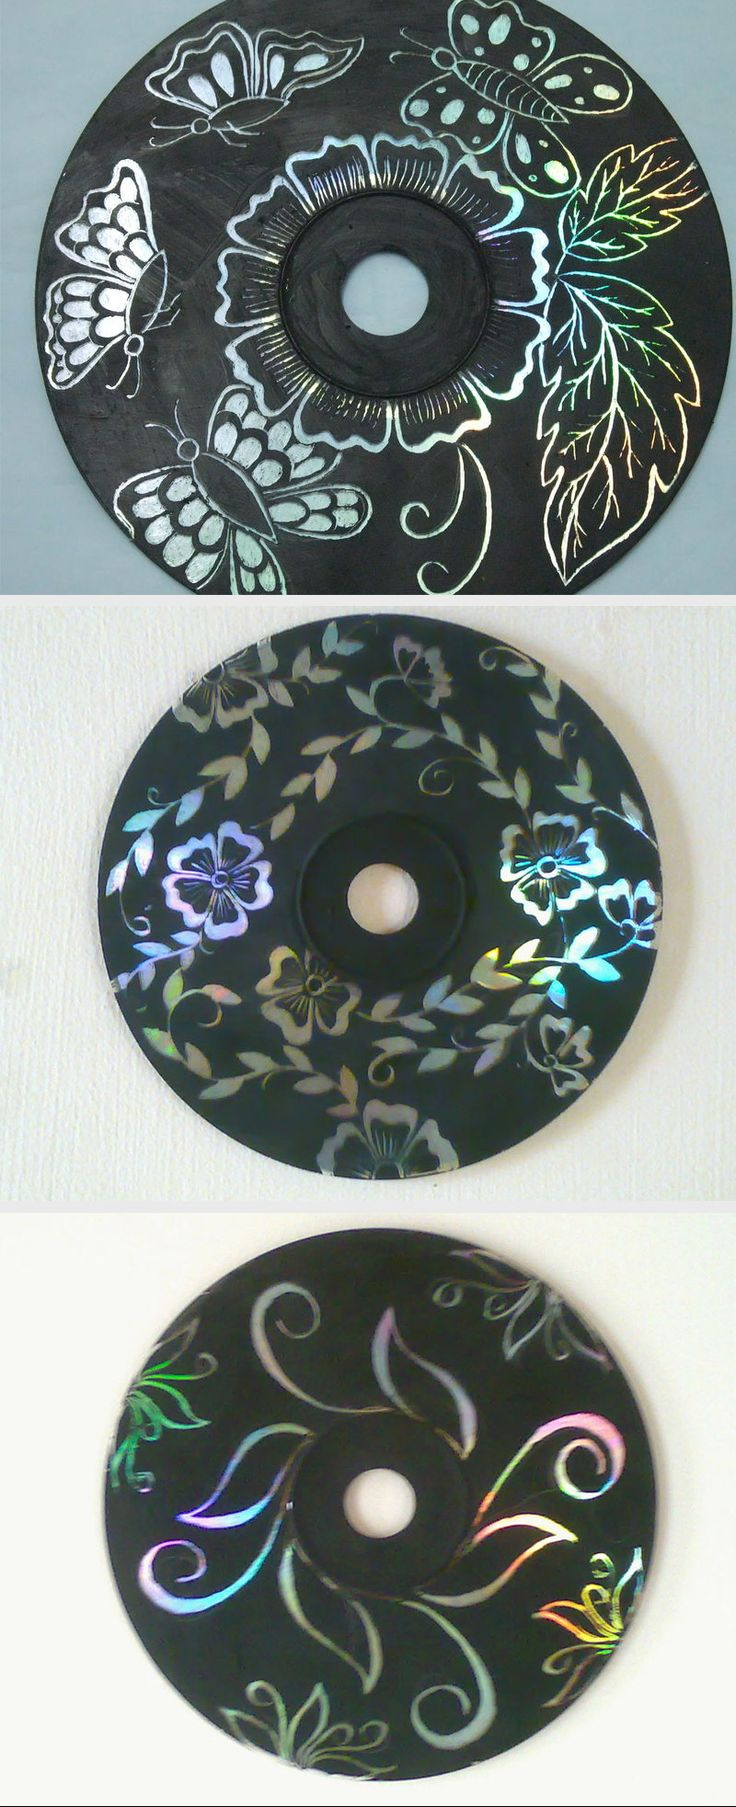 A Fun Project To Do With All Those Old CDs You No Longer Use.